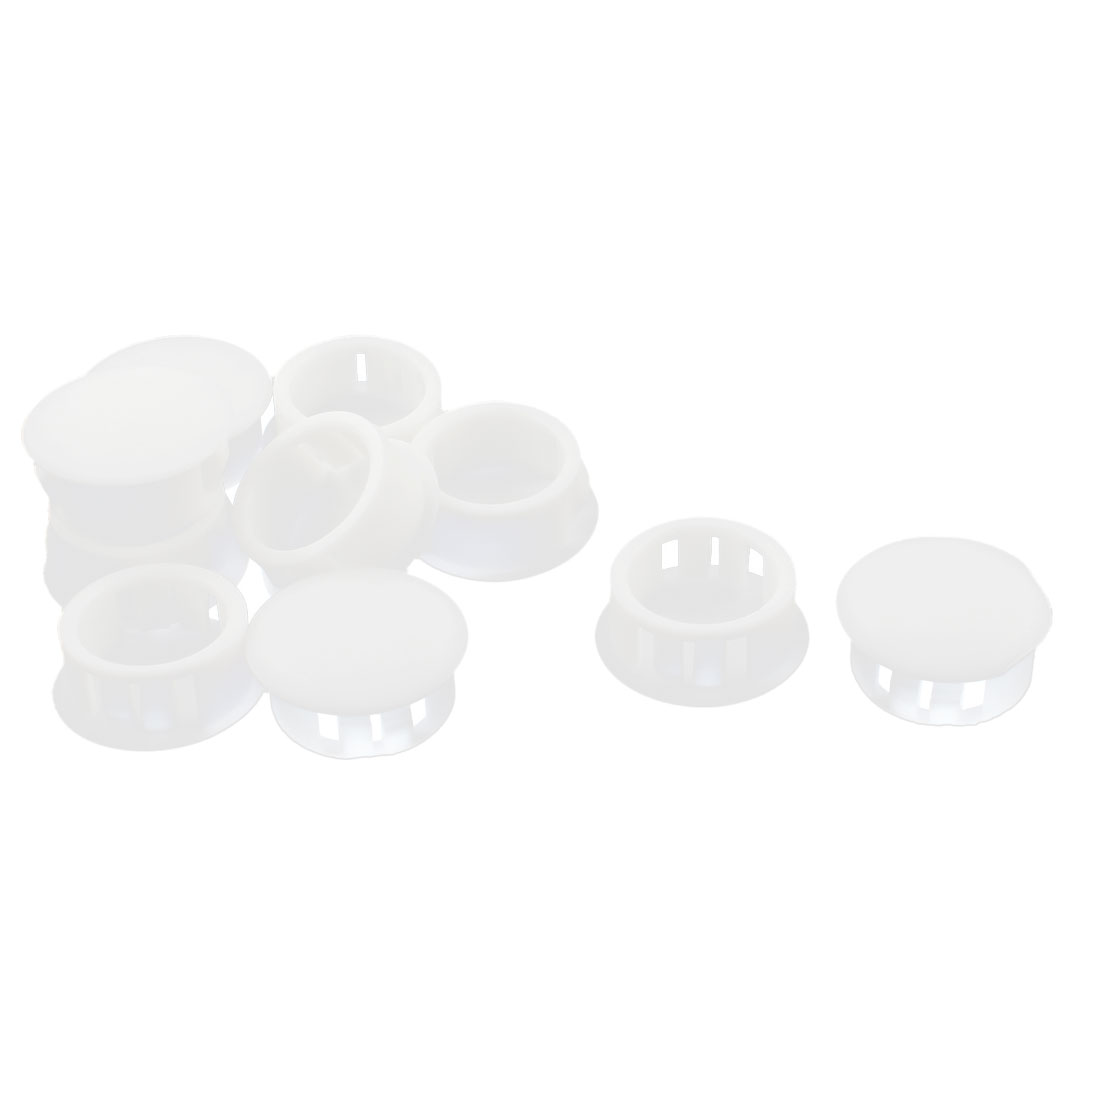 10 Pcs SKT-20 20.1mm Insulated White Plastic Snap in Mounting Locking Hole Plug Harness Fastener Cover